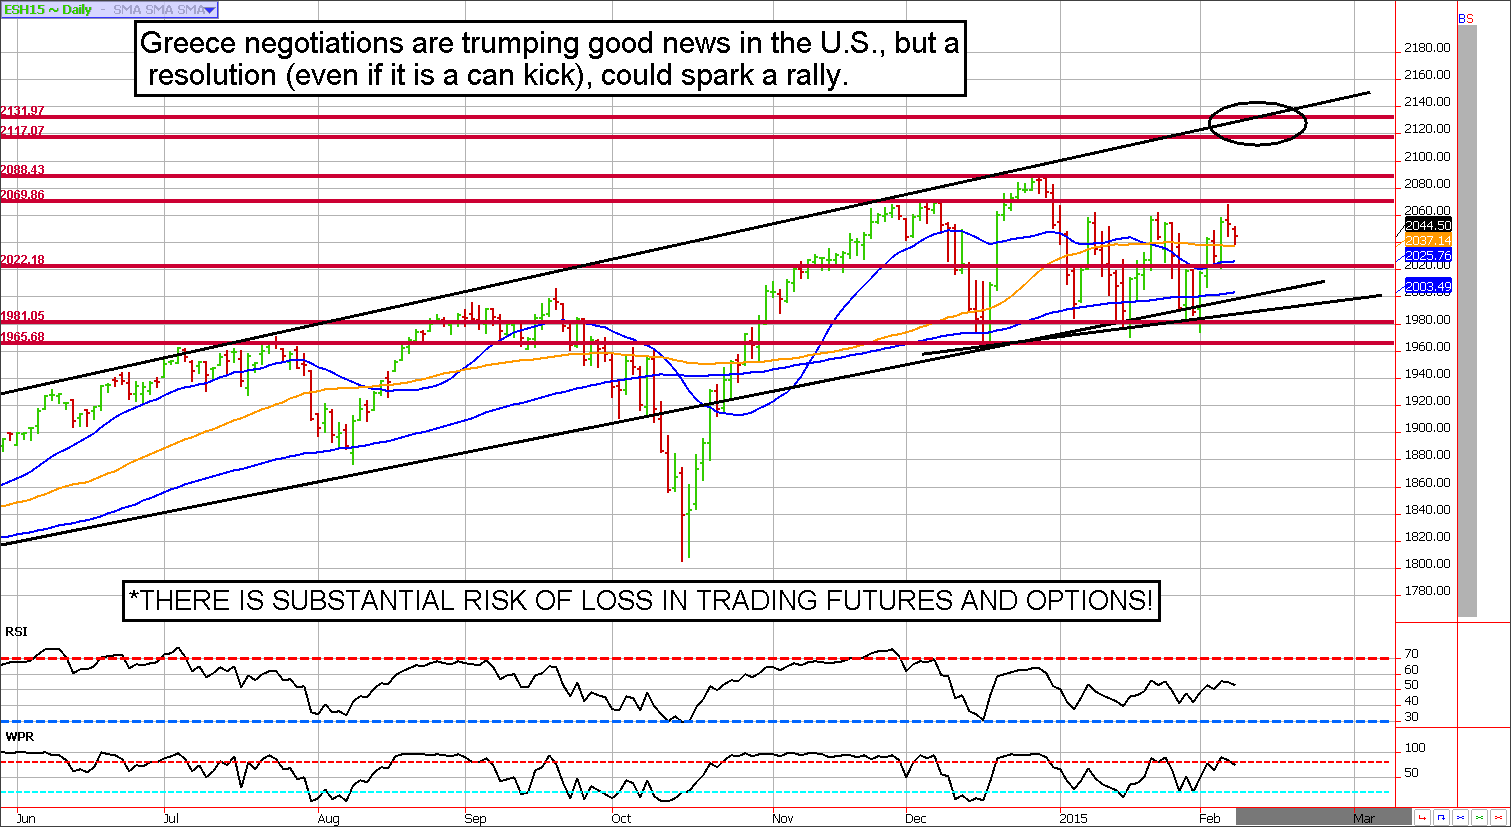 S&P 500 Futures Technical Analysis